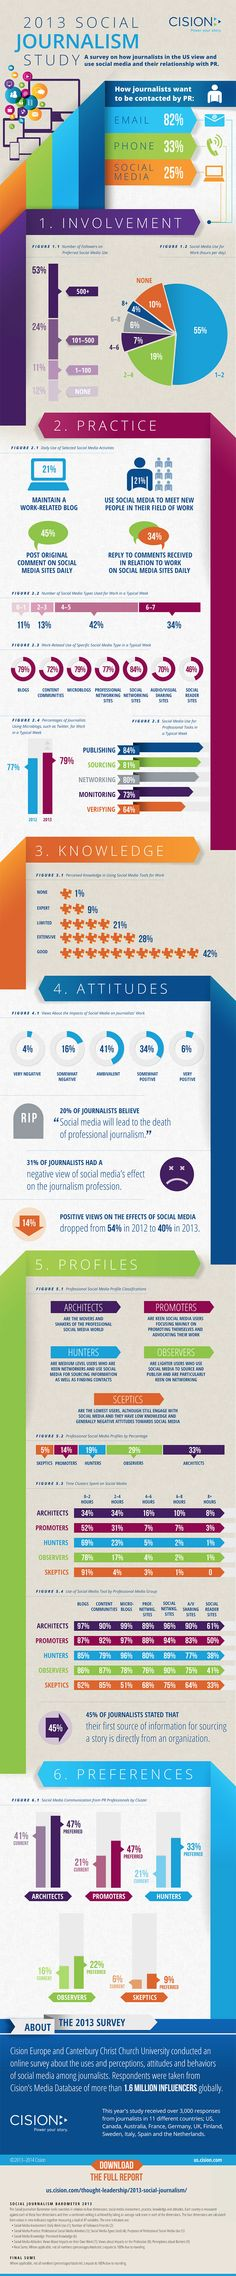 How do US Journalists view social media and their relationship with PR?